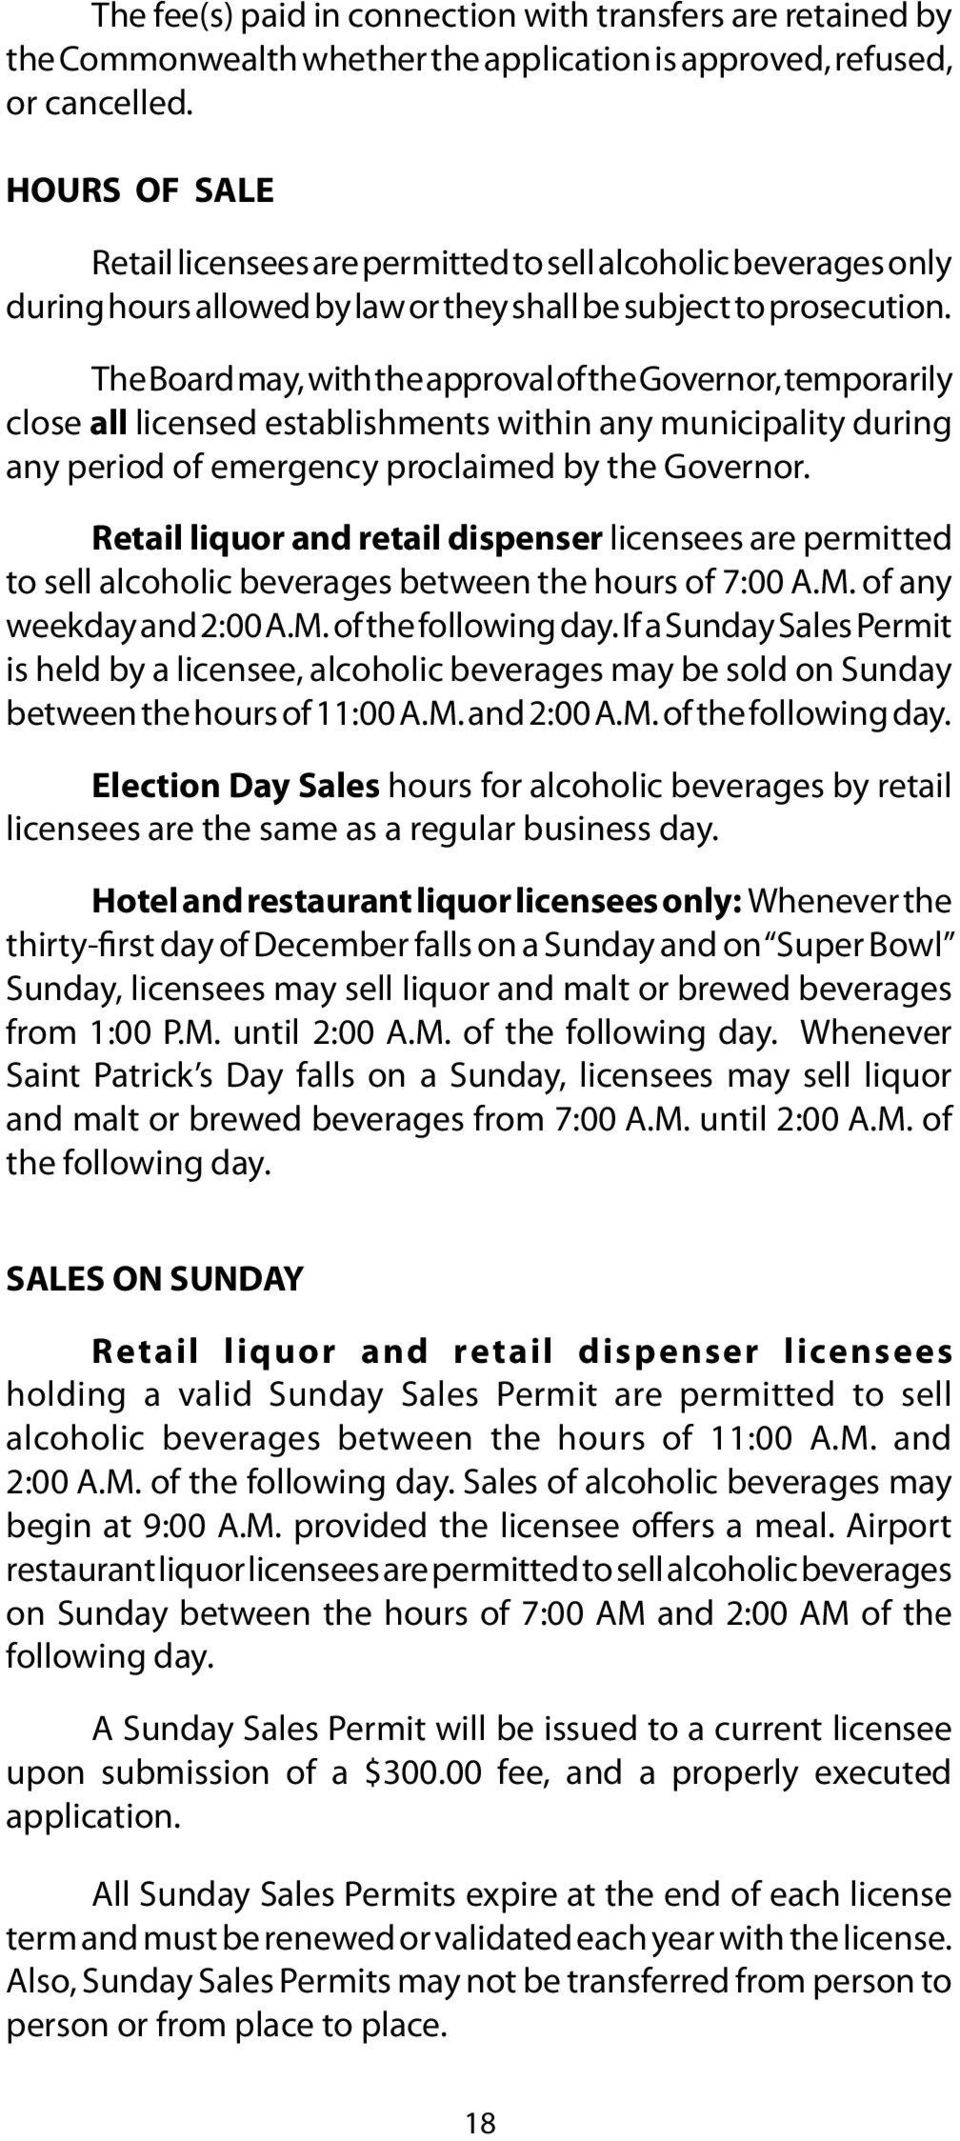 The Board may, with the approval of the Governor, temporarily close all licensed establishments within any municipality during any period of emergency proclaimed by the Governor.